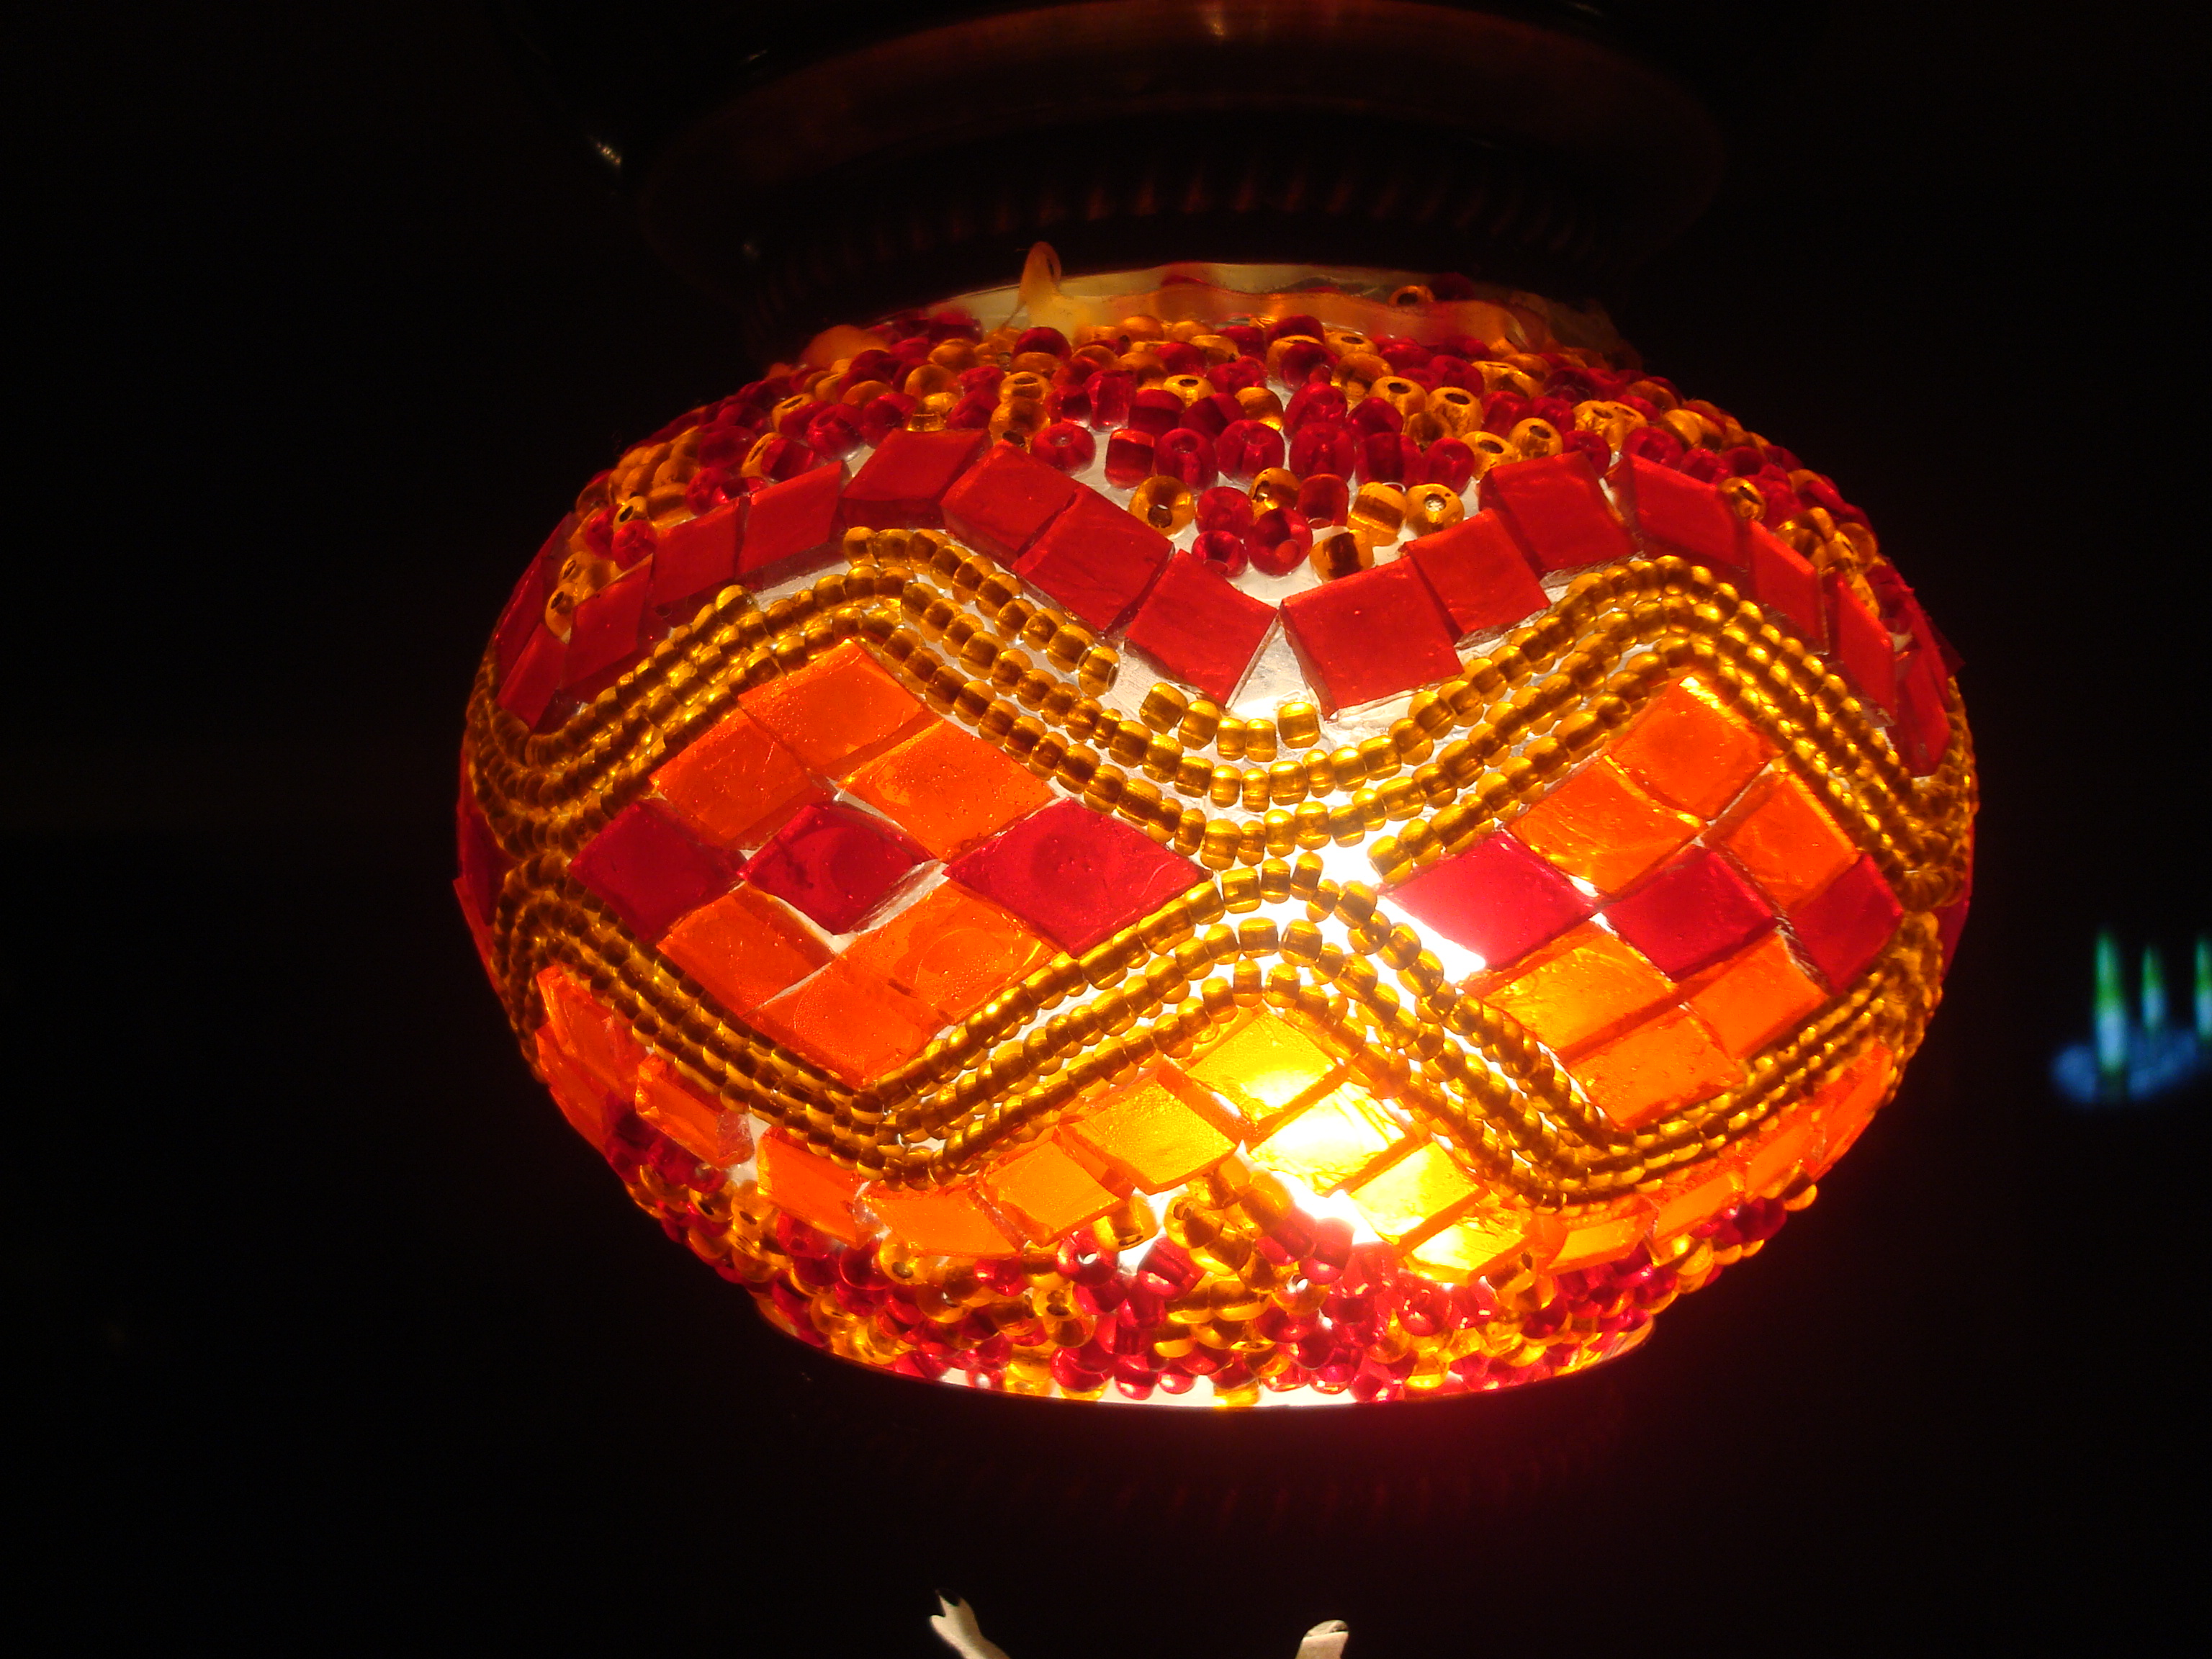 Hand made lamp, Art, Colorful, Craftsmanship, Glass, HQ Photo